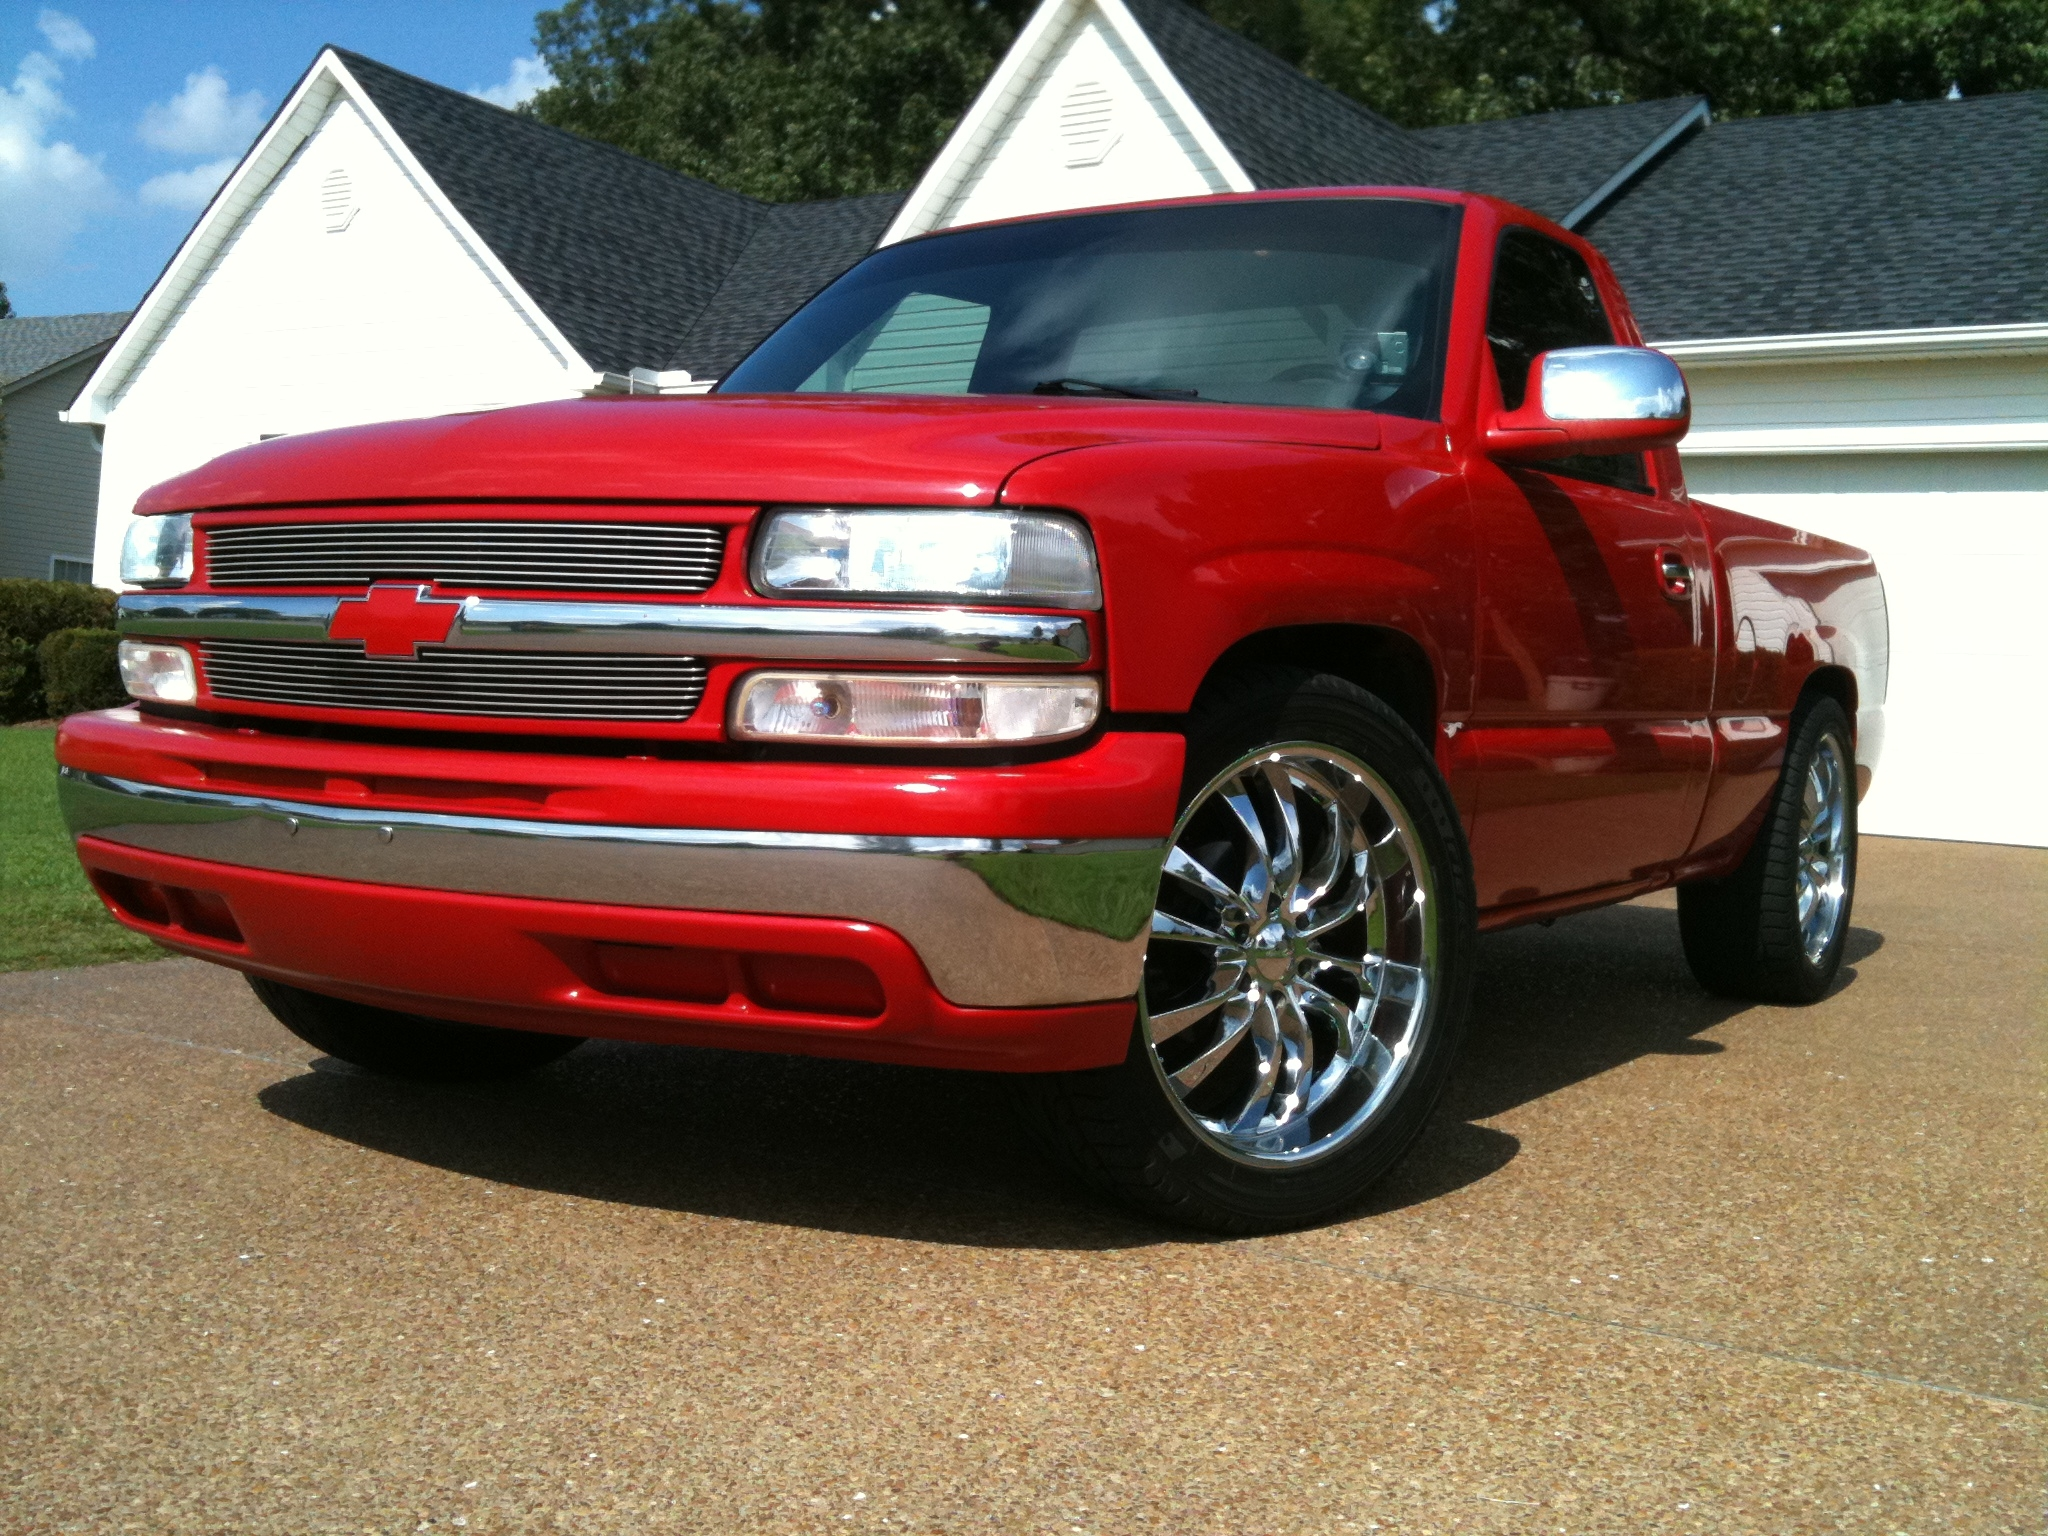 2hott4yall 2001 chevrolet silverado 1500 regular cab specs. Black Bedroom Furniture Sets. Home Design Ideas